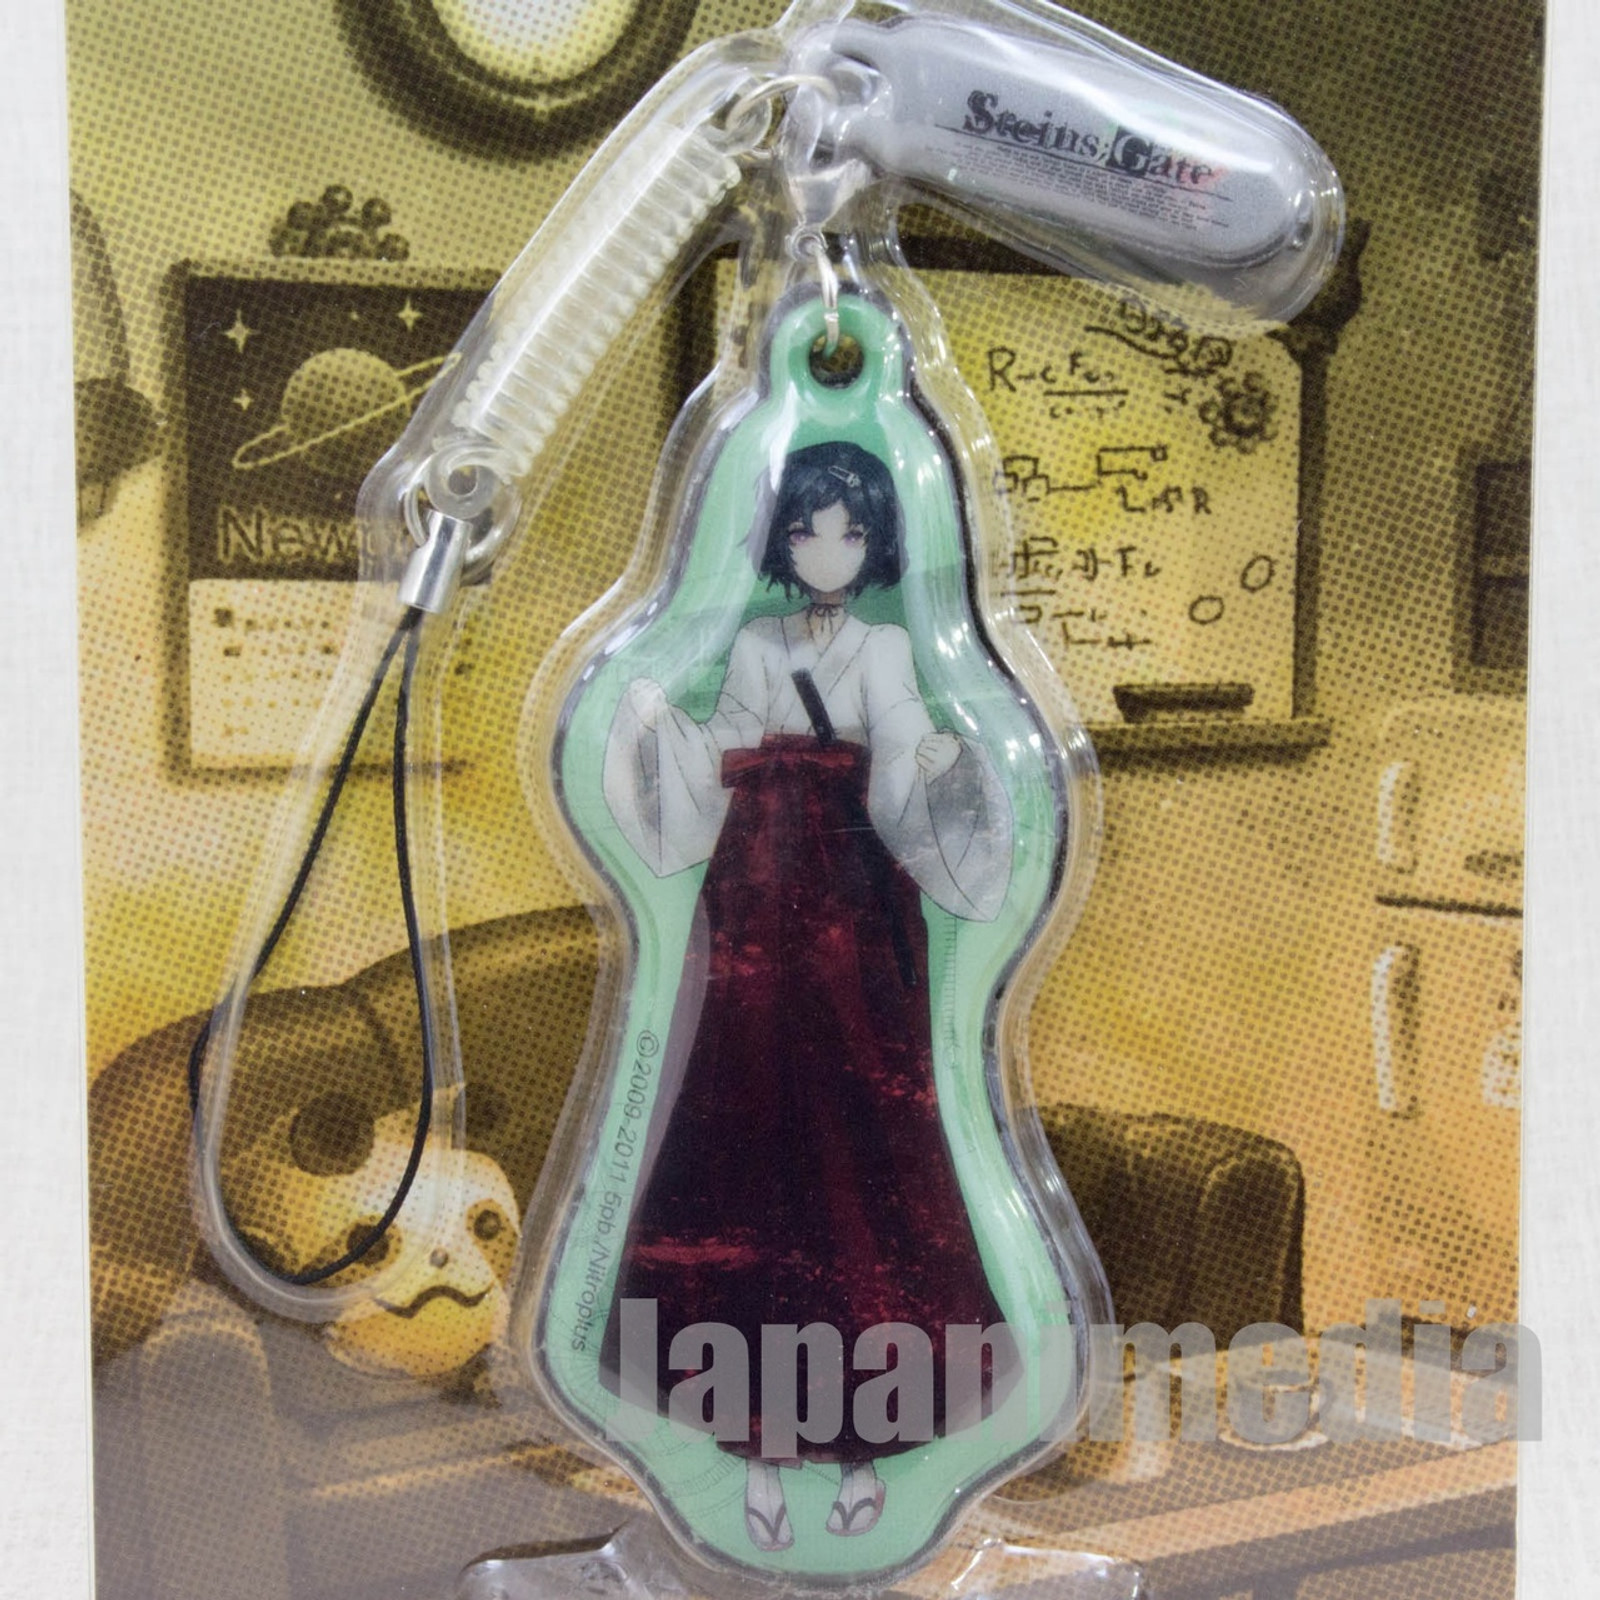 Steins ; Gate Ruka Urushibara Display Cleaner Mascot Strap Taito JAPAN ANIME